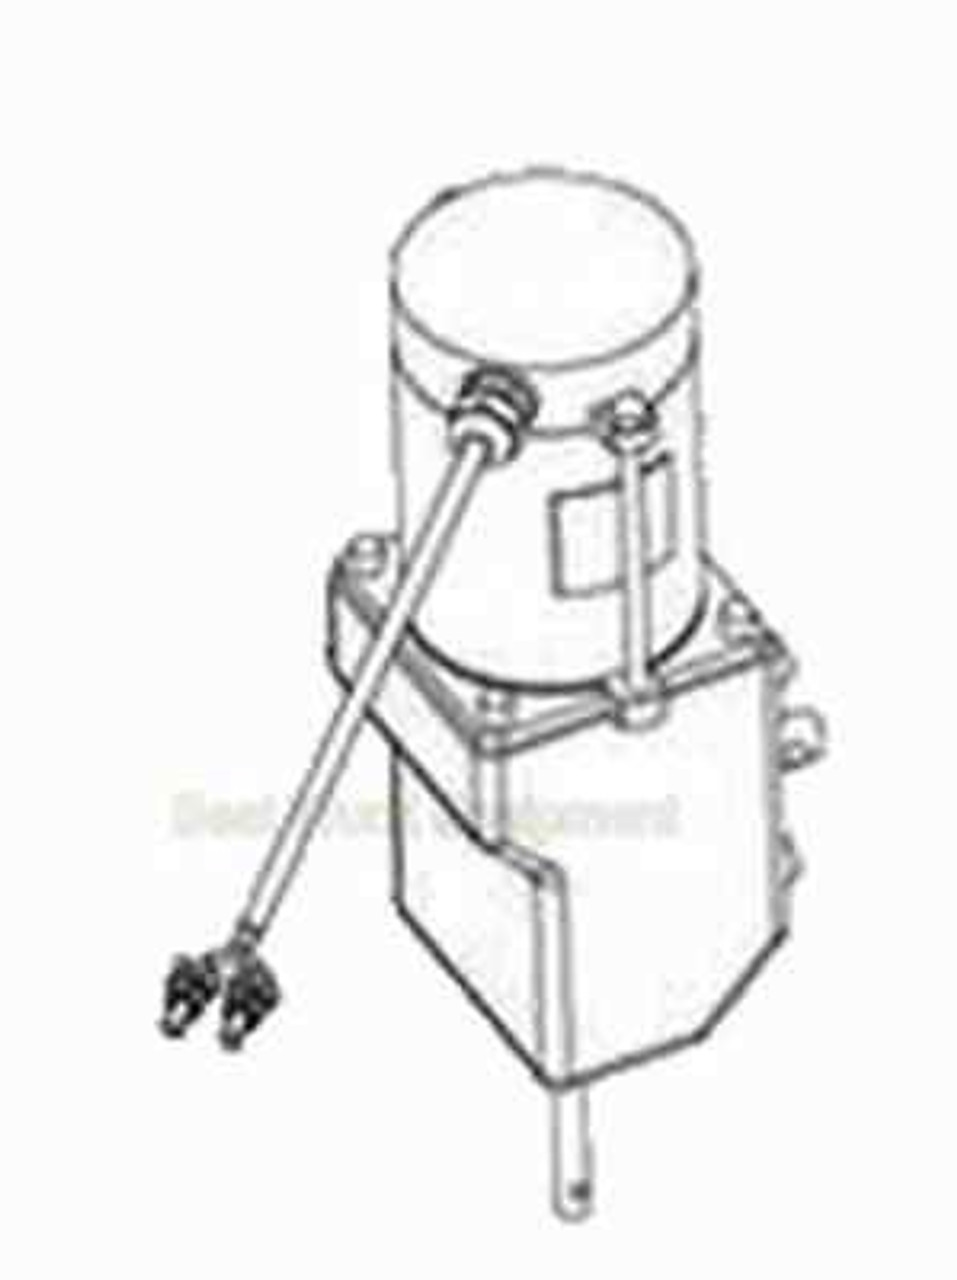 3015377 BUYERS SALTDOGG REPLACEMENT .5 HP 12 VDC DUAL SHAFT GEAR MOTOR FOR TGS03 AND TGS07 2